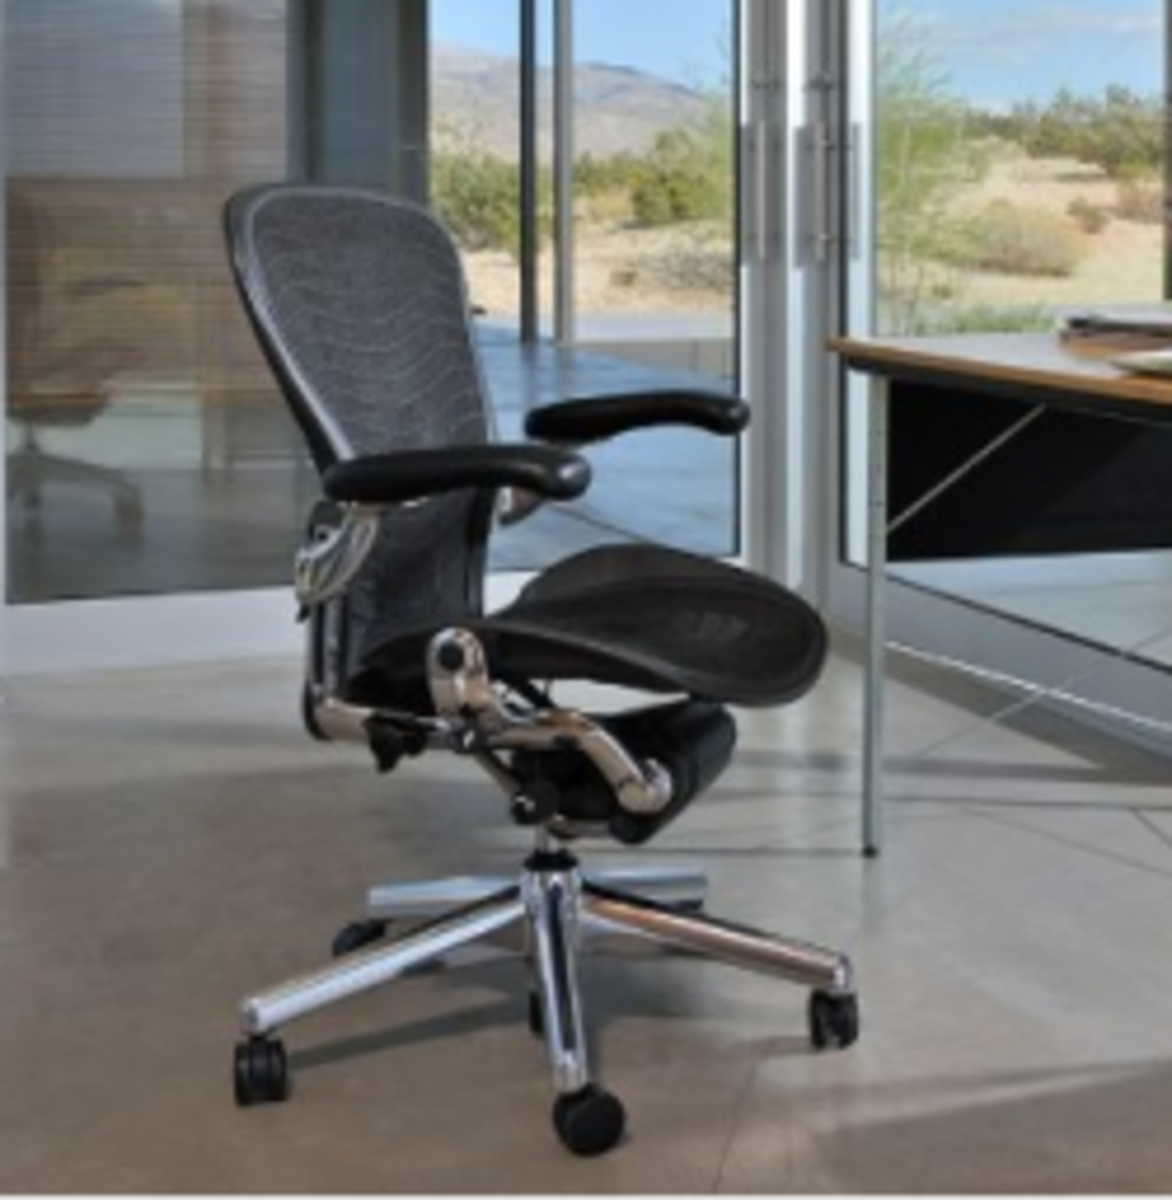 Best Ergonomic Office Chairs for 2015 Review